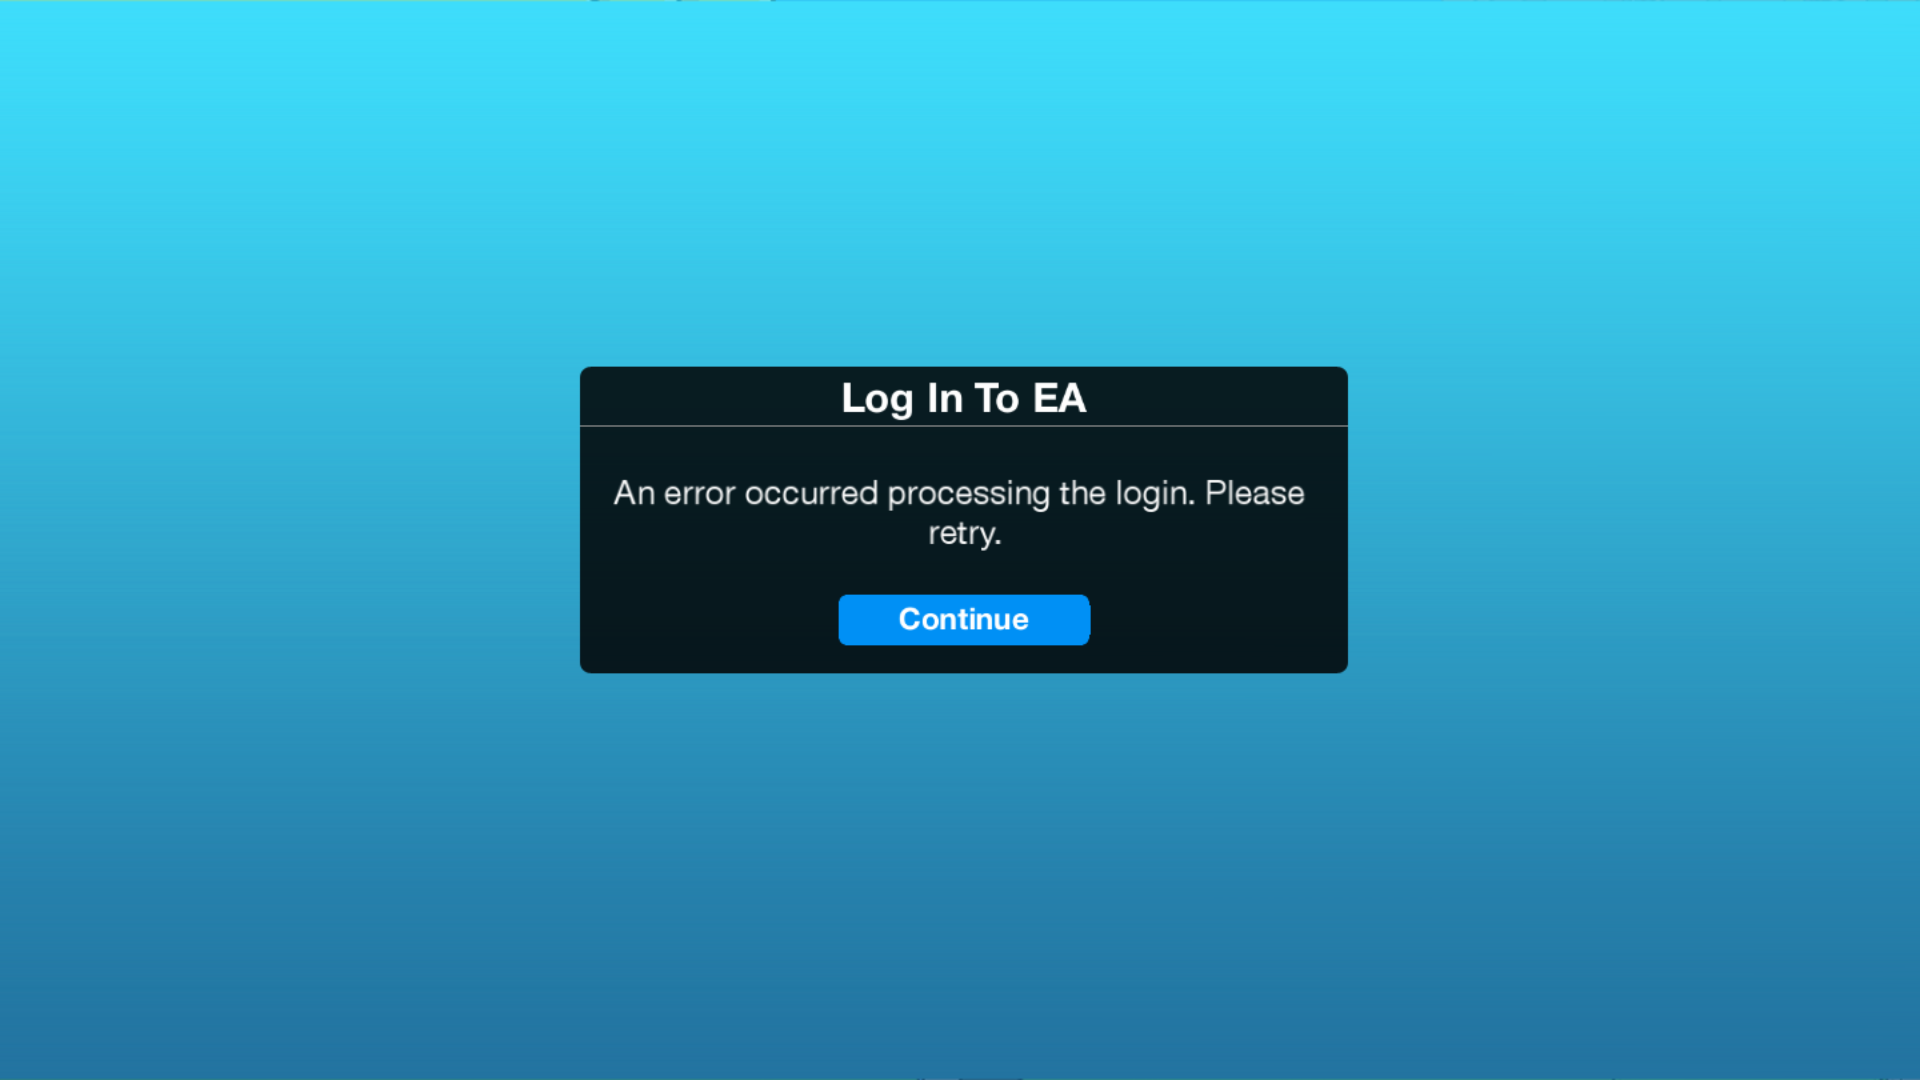 Does anybody have/had trouble logging in? Its not letting me log in and Im afraid my account deleted